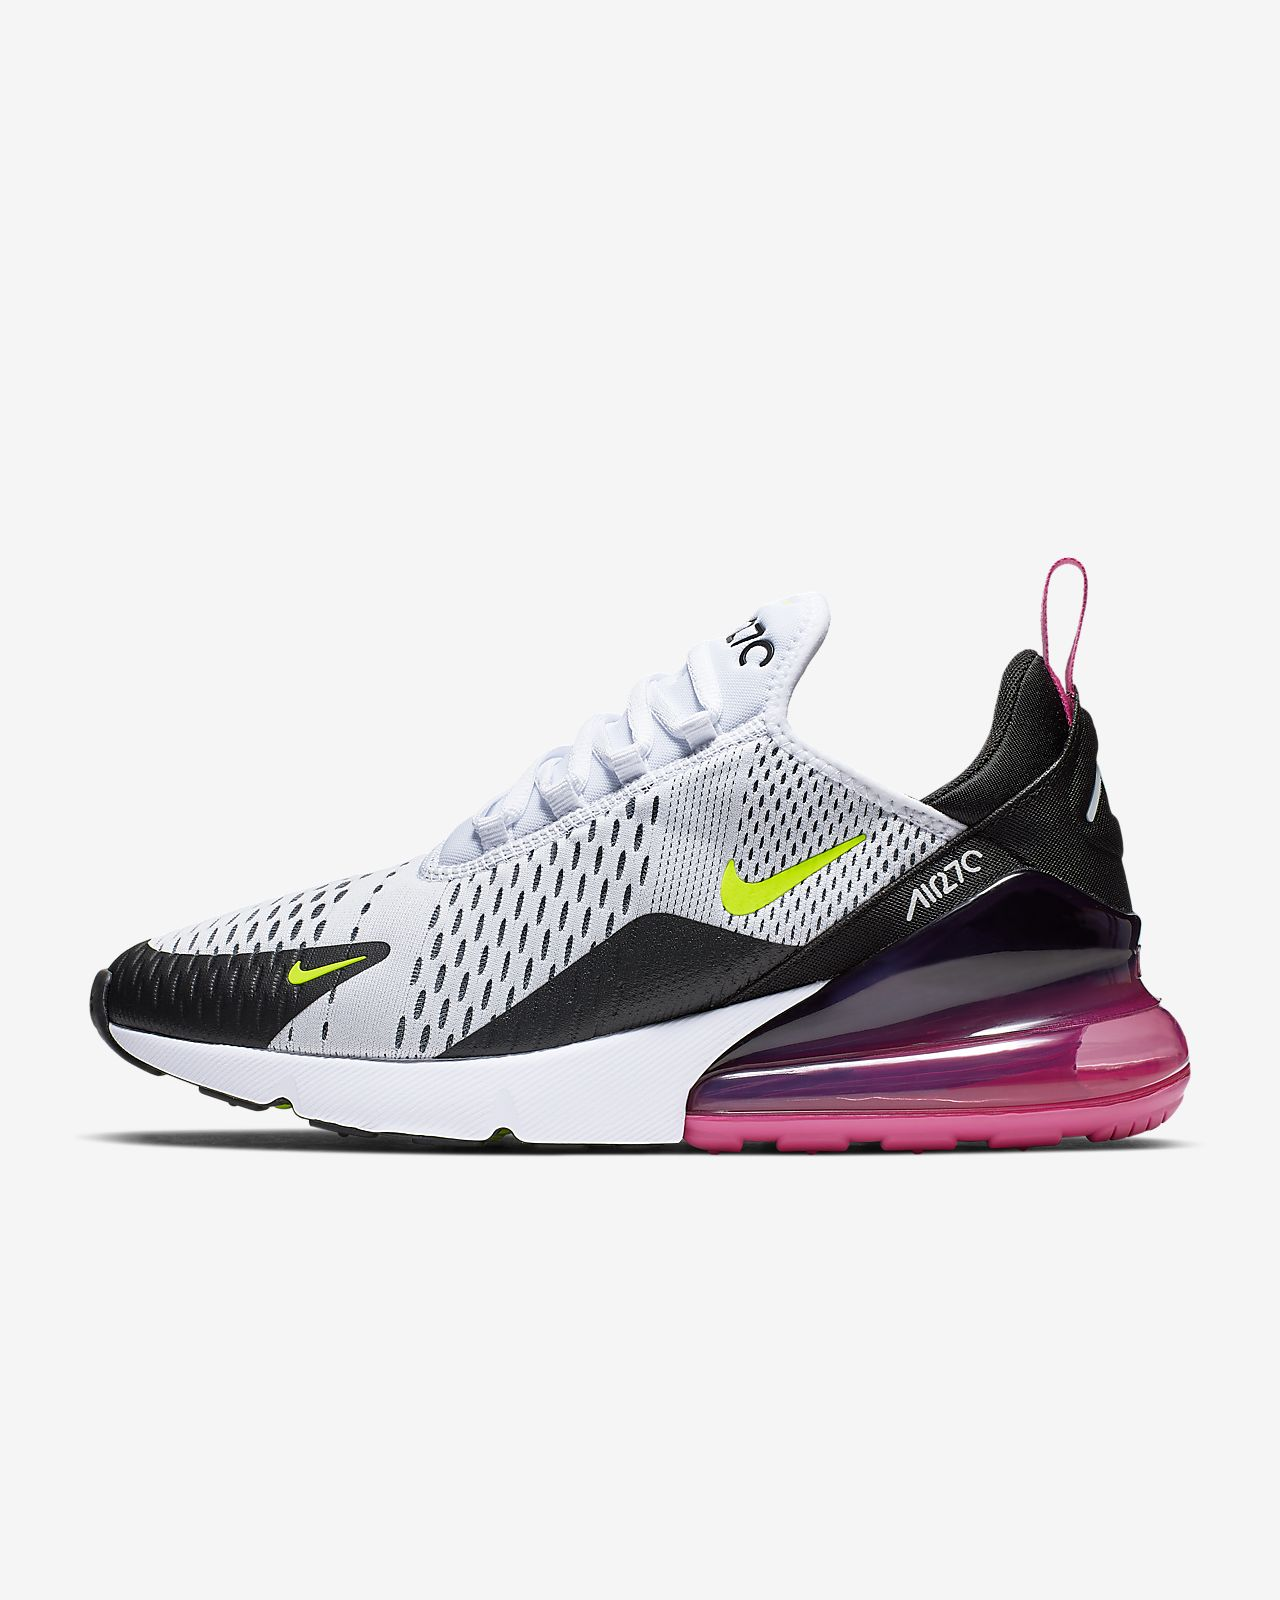 3b4d56850d Nike Air Max 270 Men's Shoe. Nike.com MY